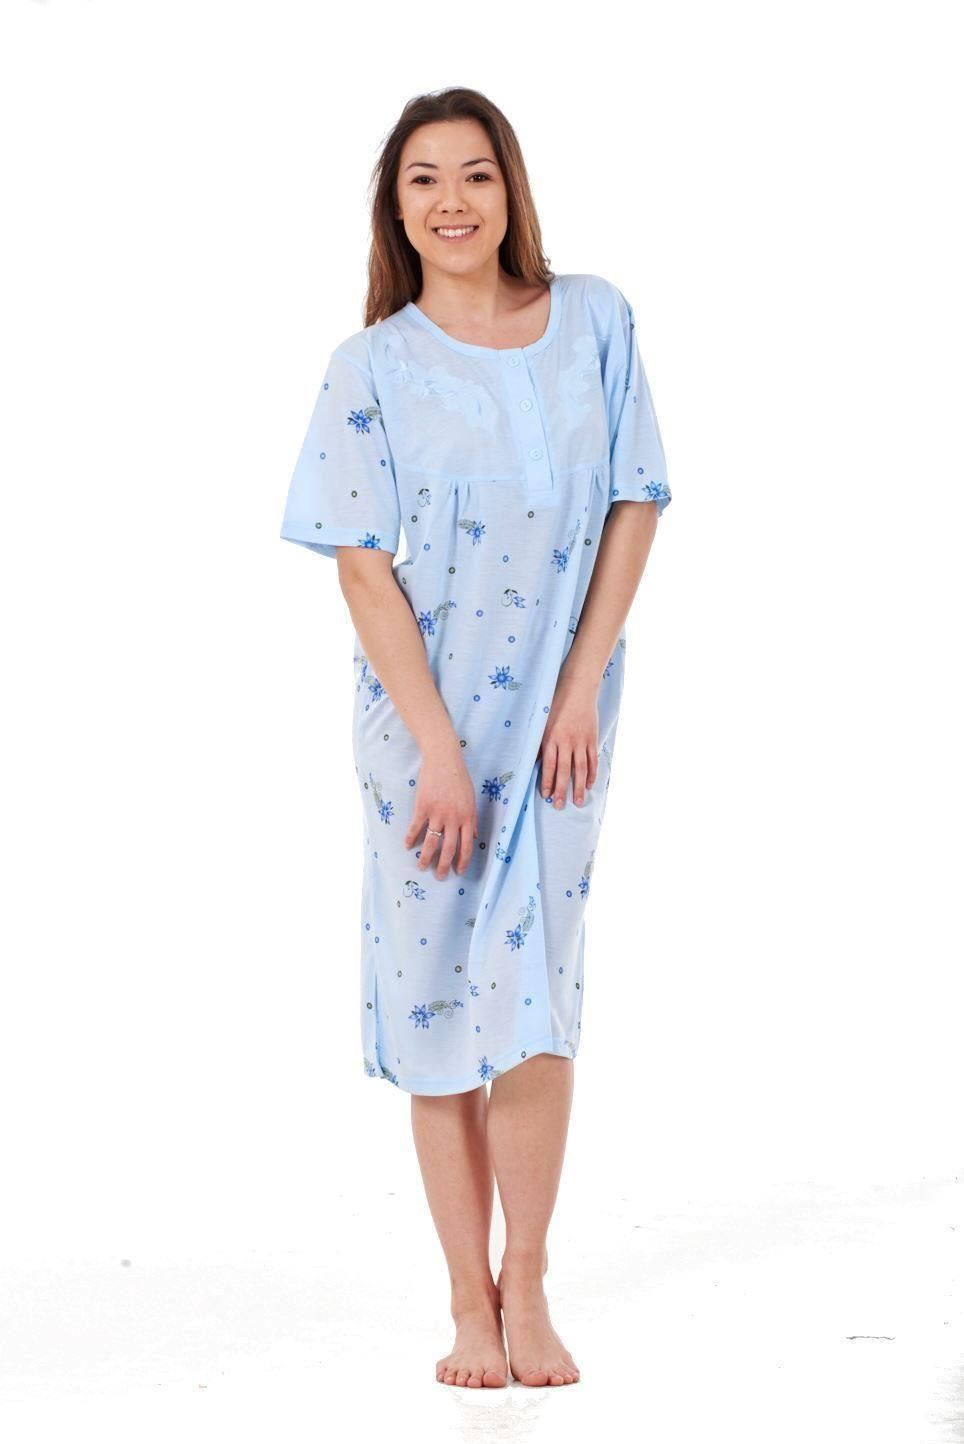 Ladies-Nightwear-Floral-Print-Short-Sleeve-Women-Rich-Cotton-Nightshirt-M-to-2XL